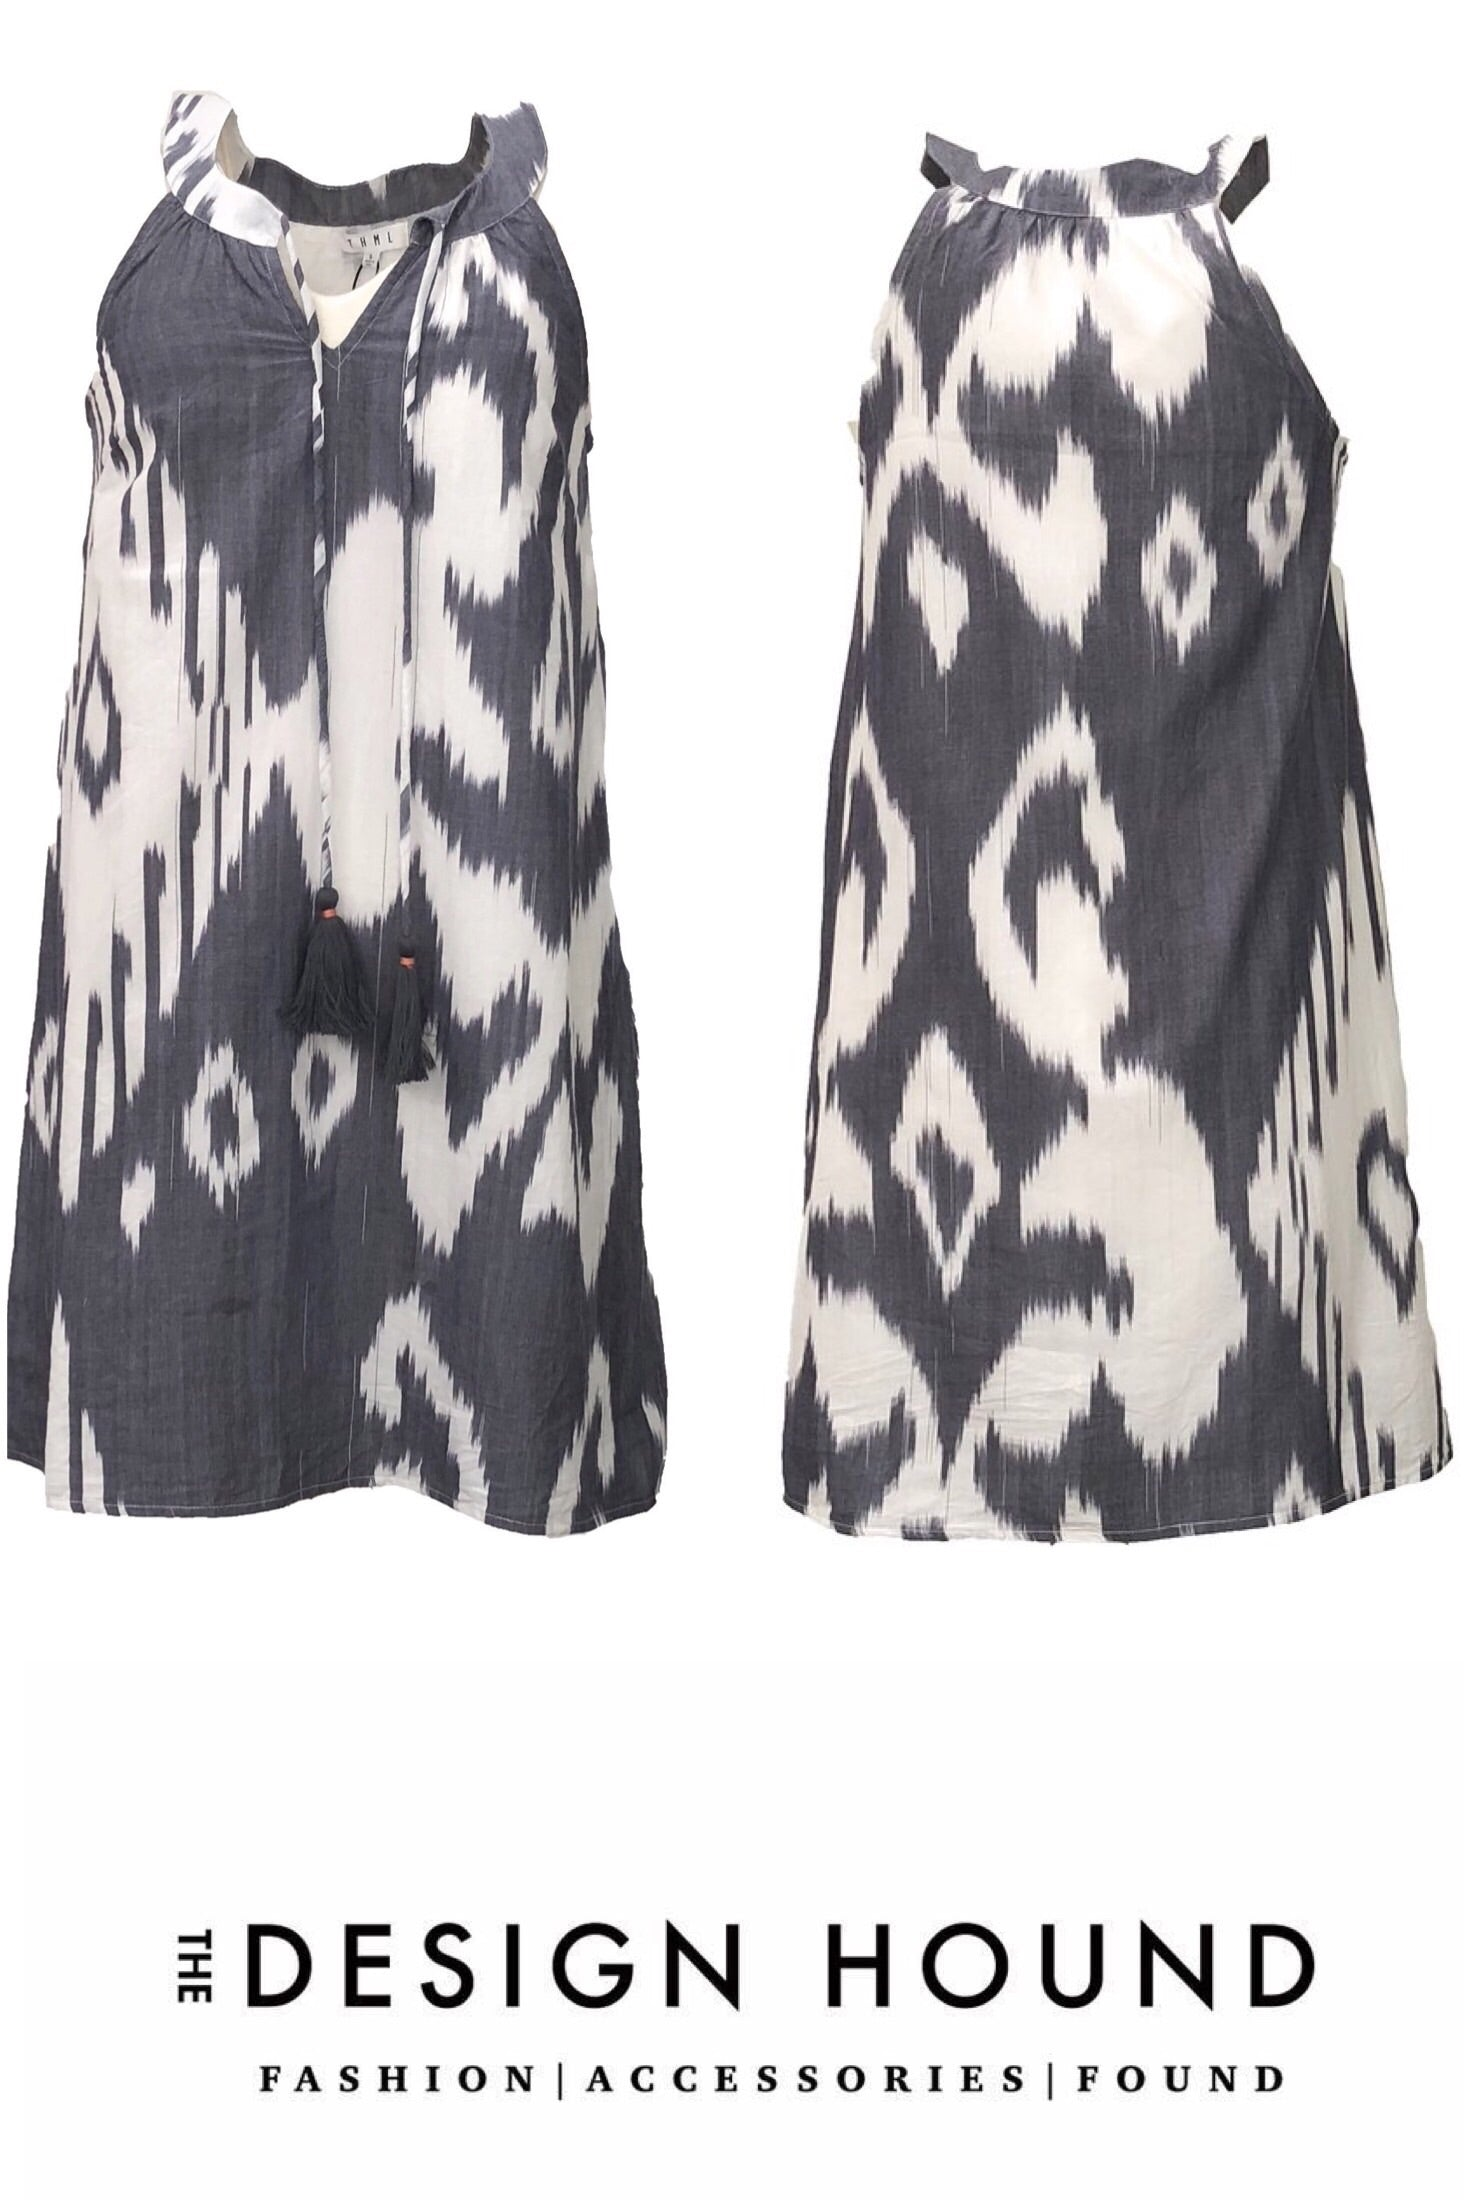 Greenbriar THML Grey Ikat Print Dress